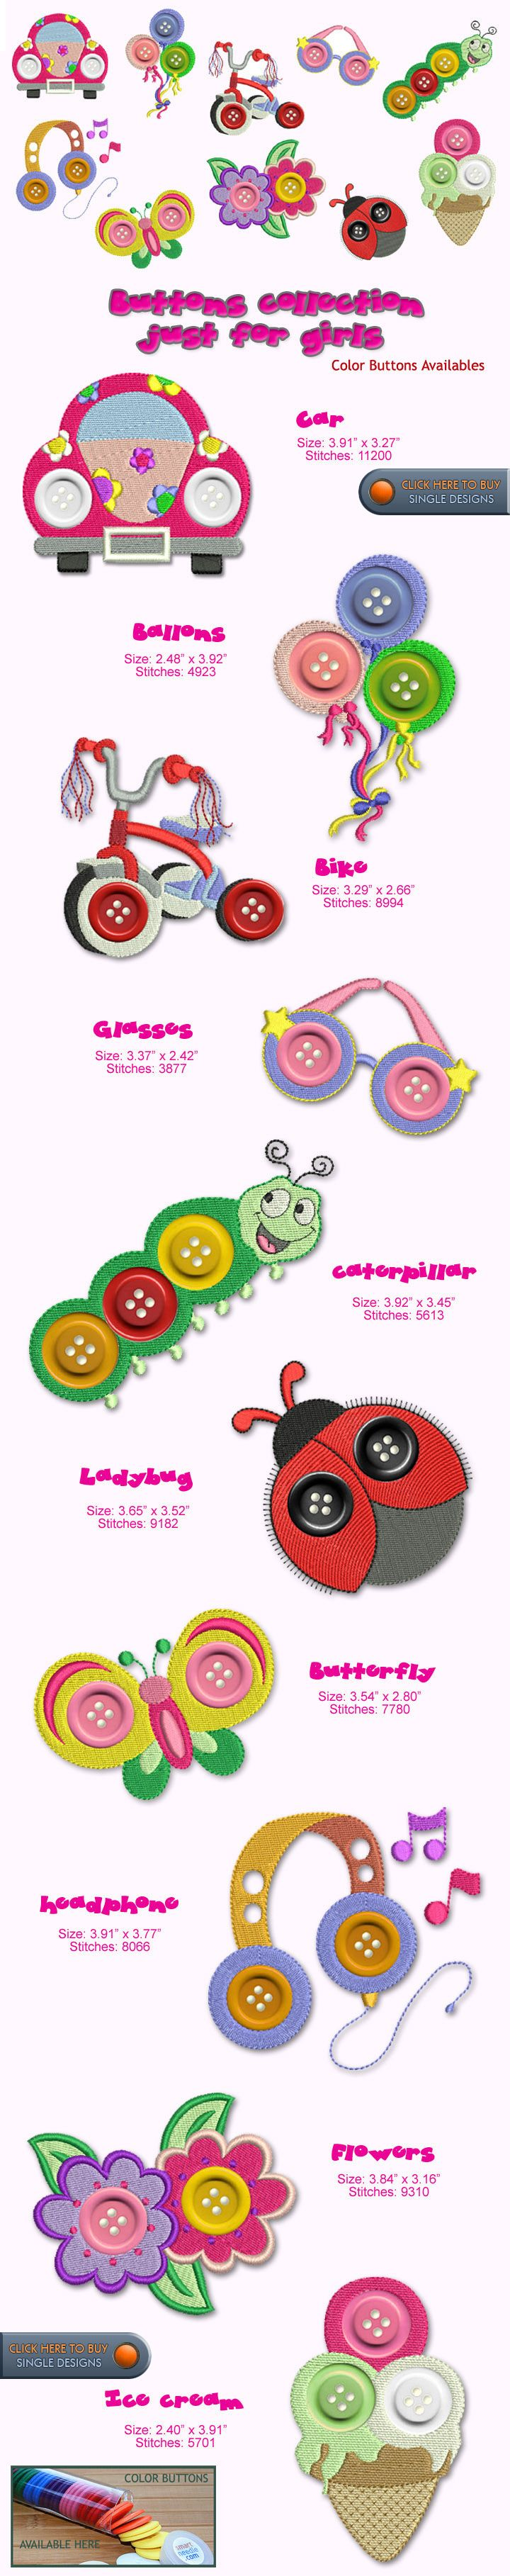 GIRL Embroidery Designs Free Embroidery Design Patterns Applique